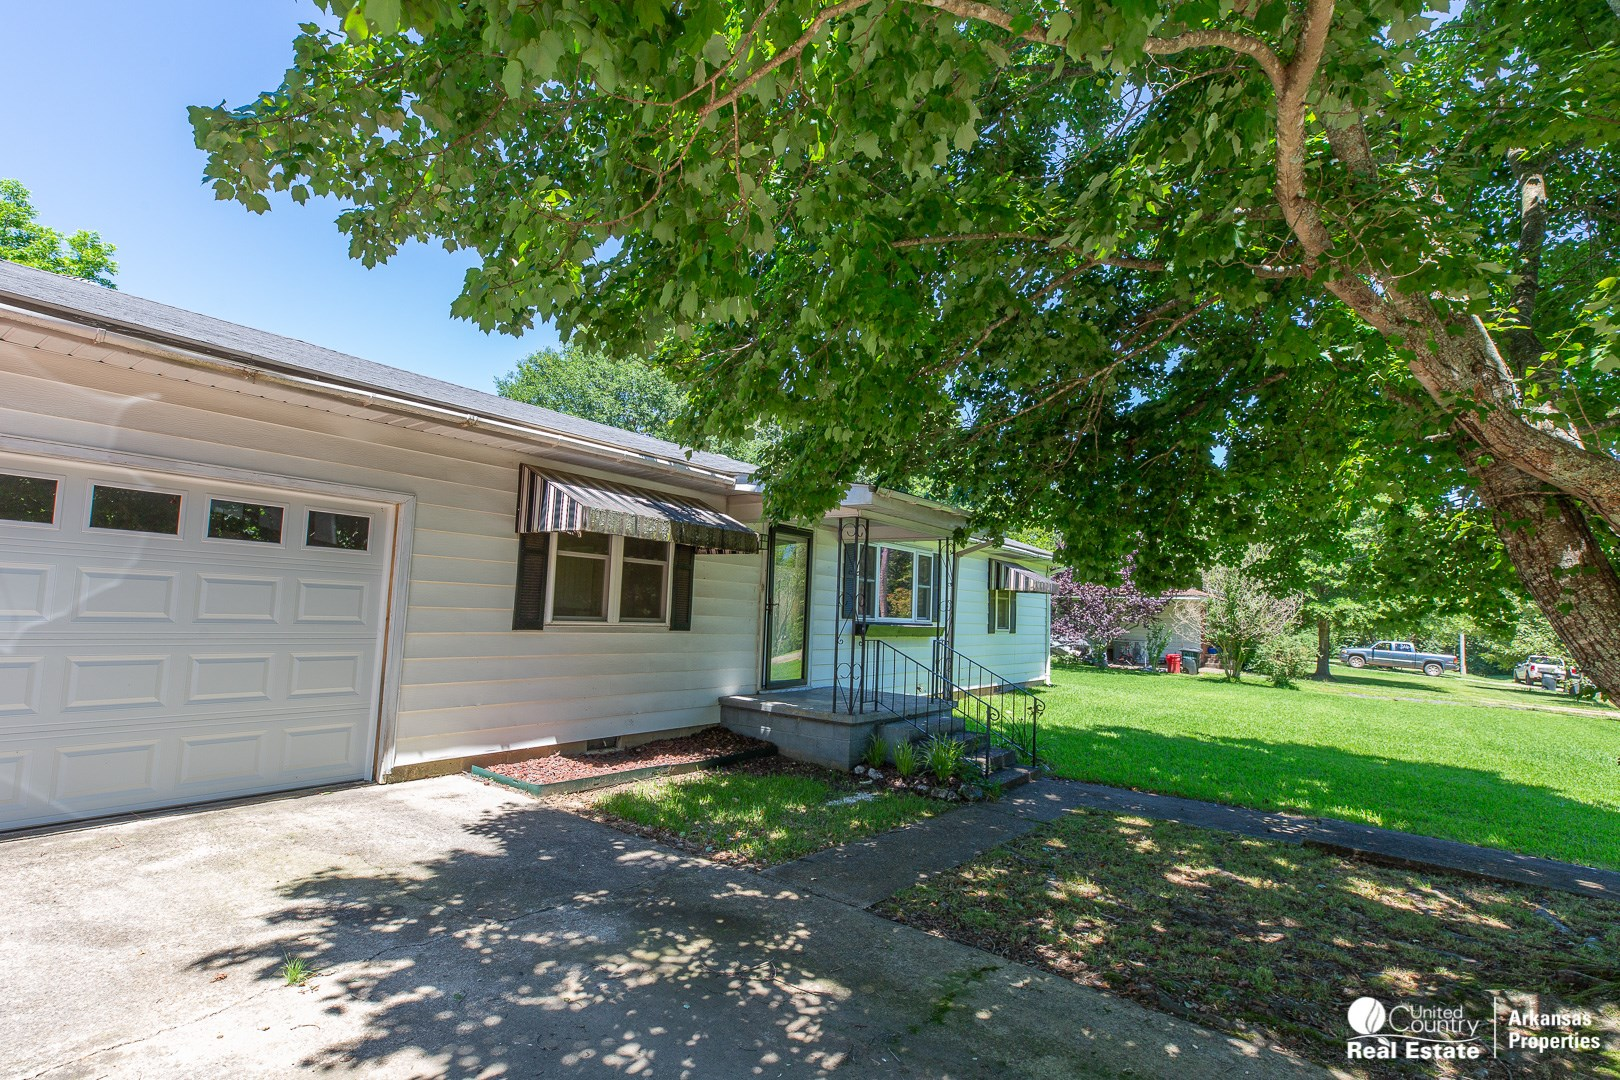 Charming small home in Polk County, AR